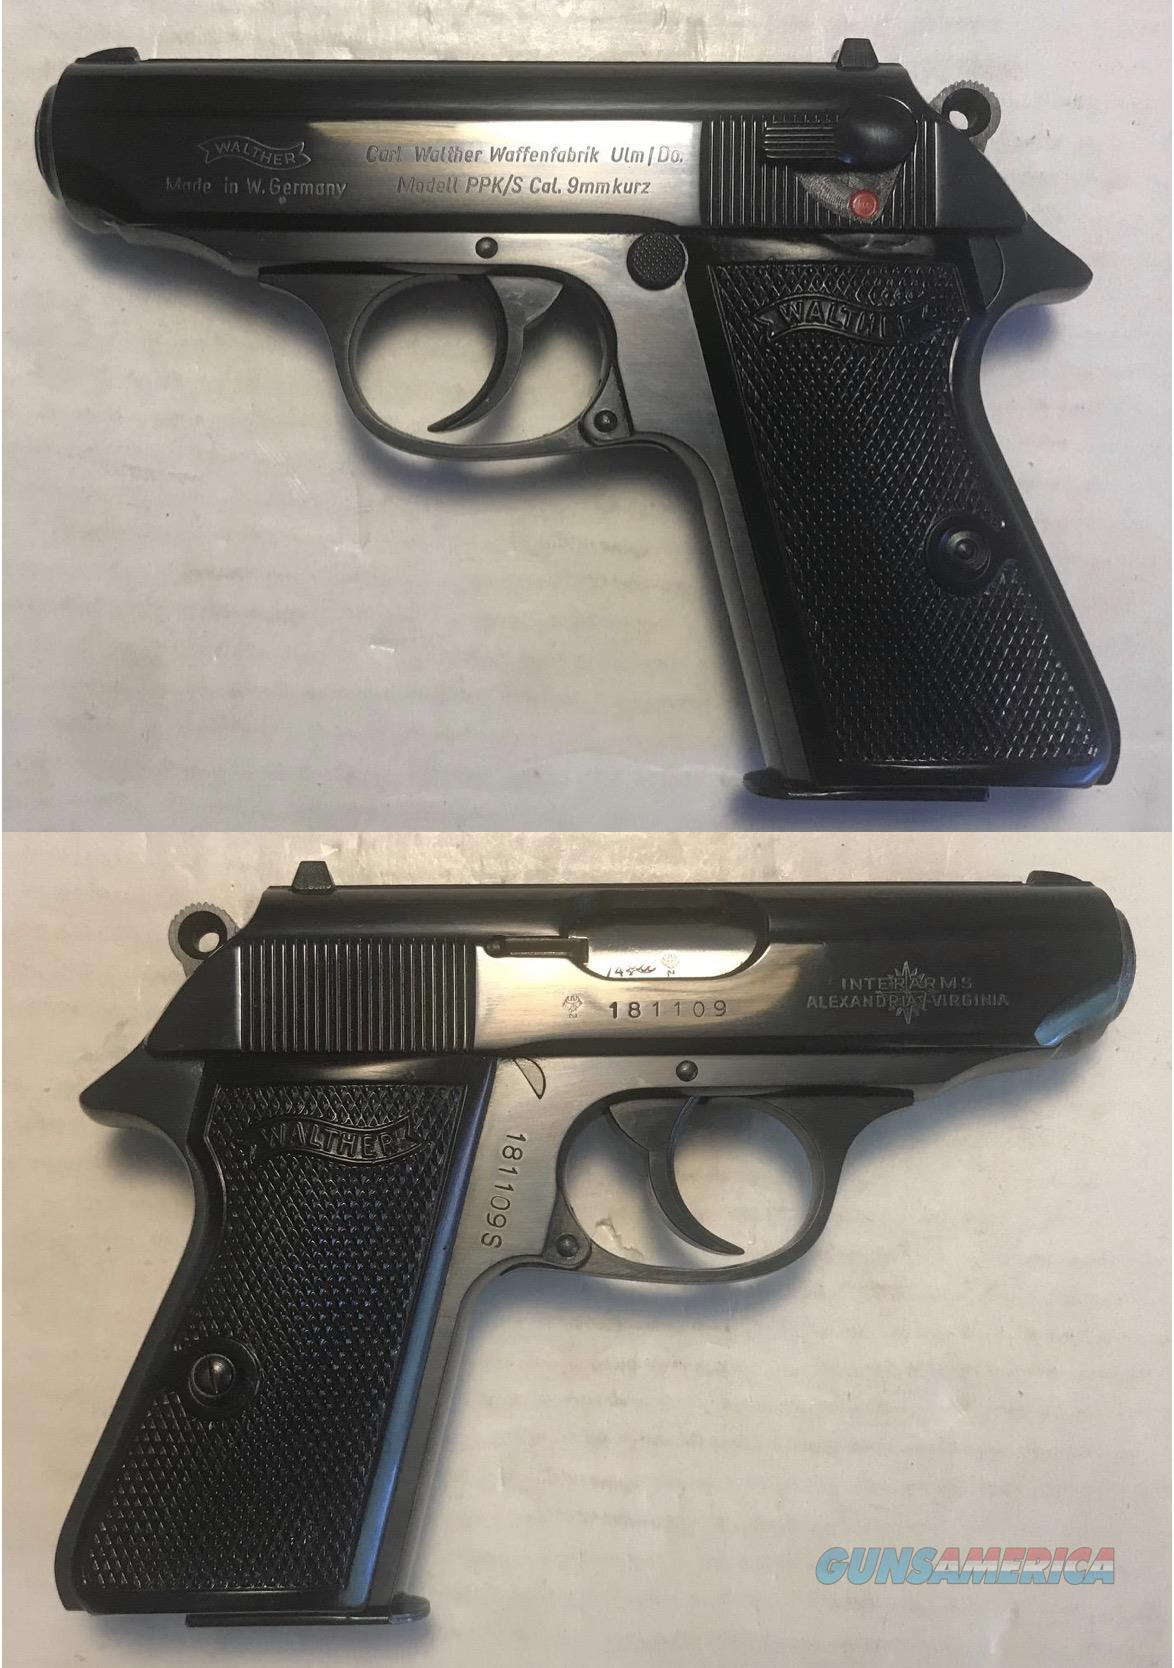 German Walther PPK/S 9mmK (.380acp) Mfg. 1974  Guns > Pistols > Walther Pistols > Post WWII > PPK Series